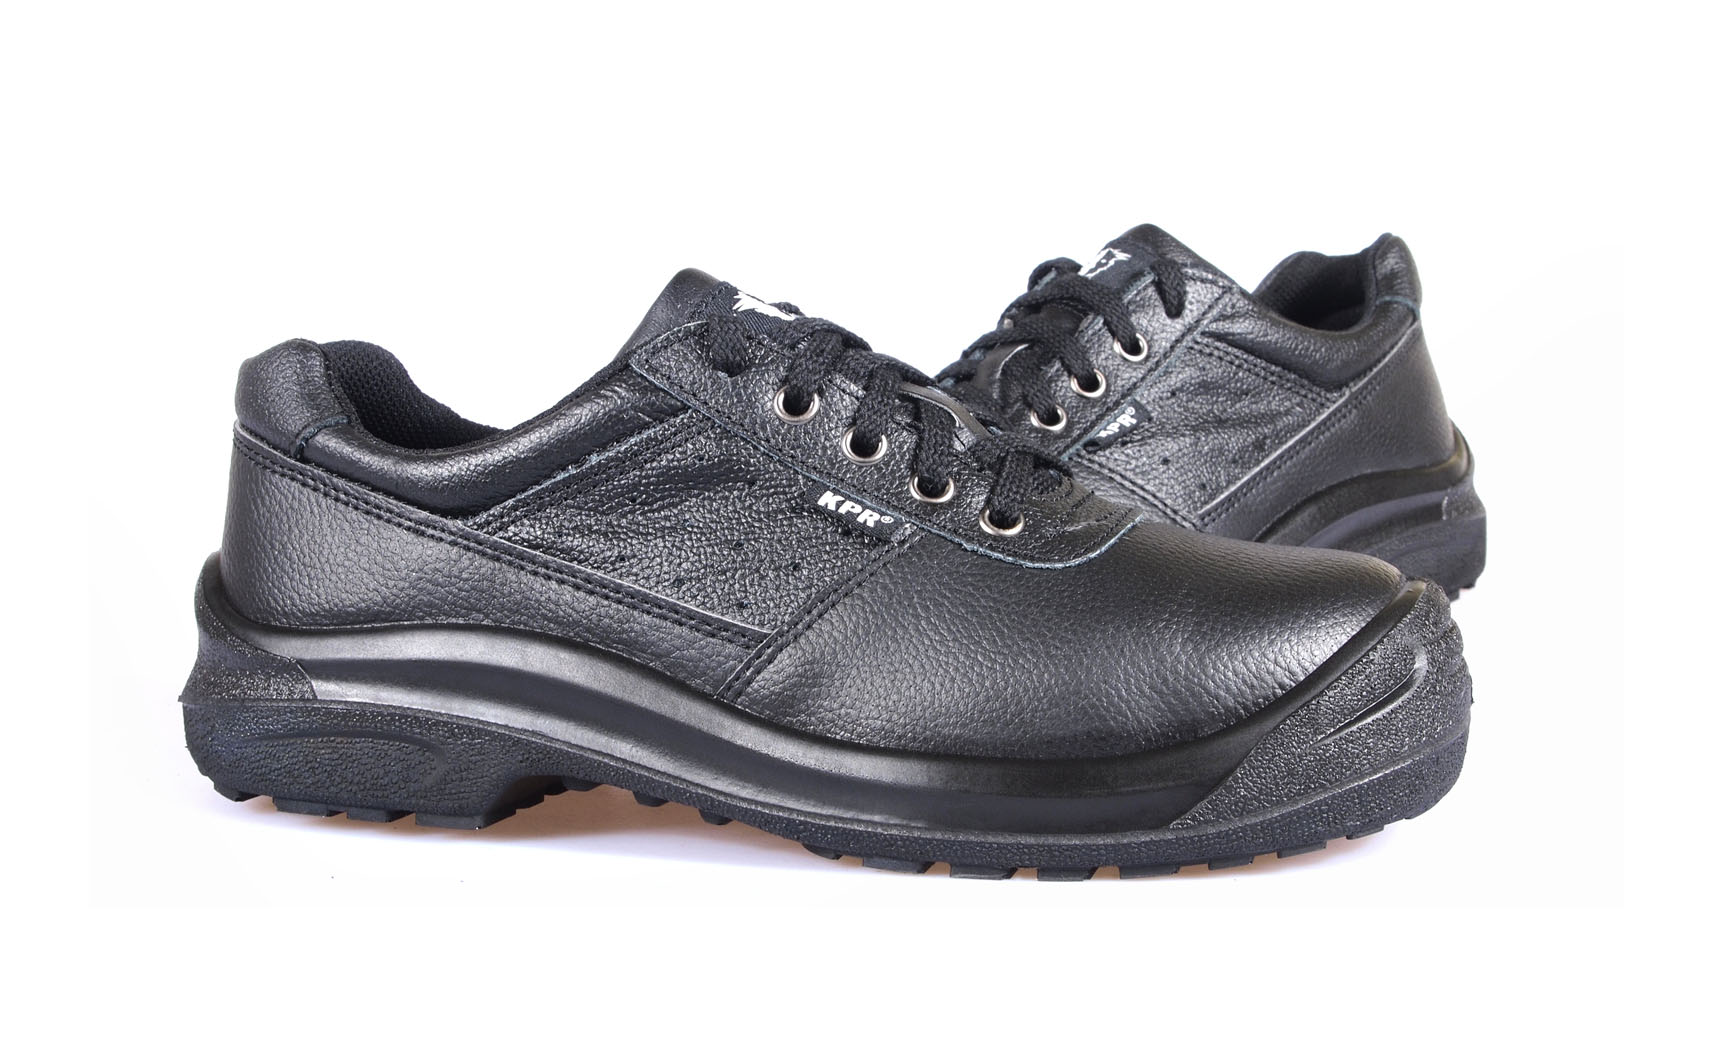 KPR L-Series Low Cut 4 Eyelet Lace Up Safety Shoes